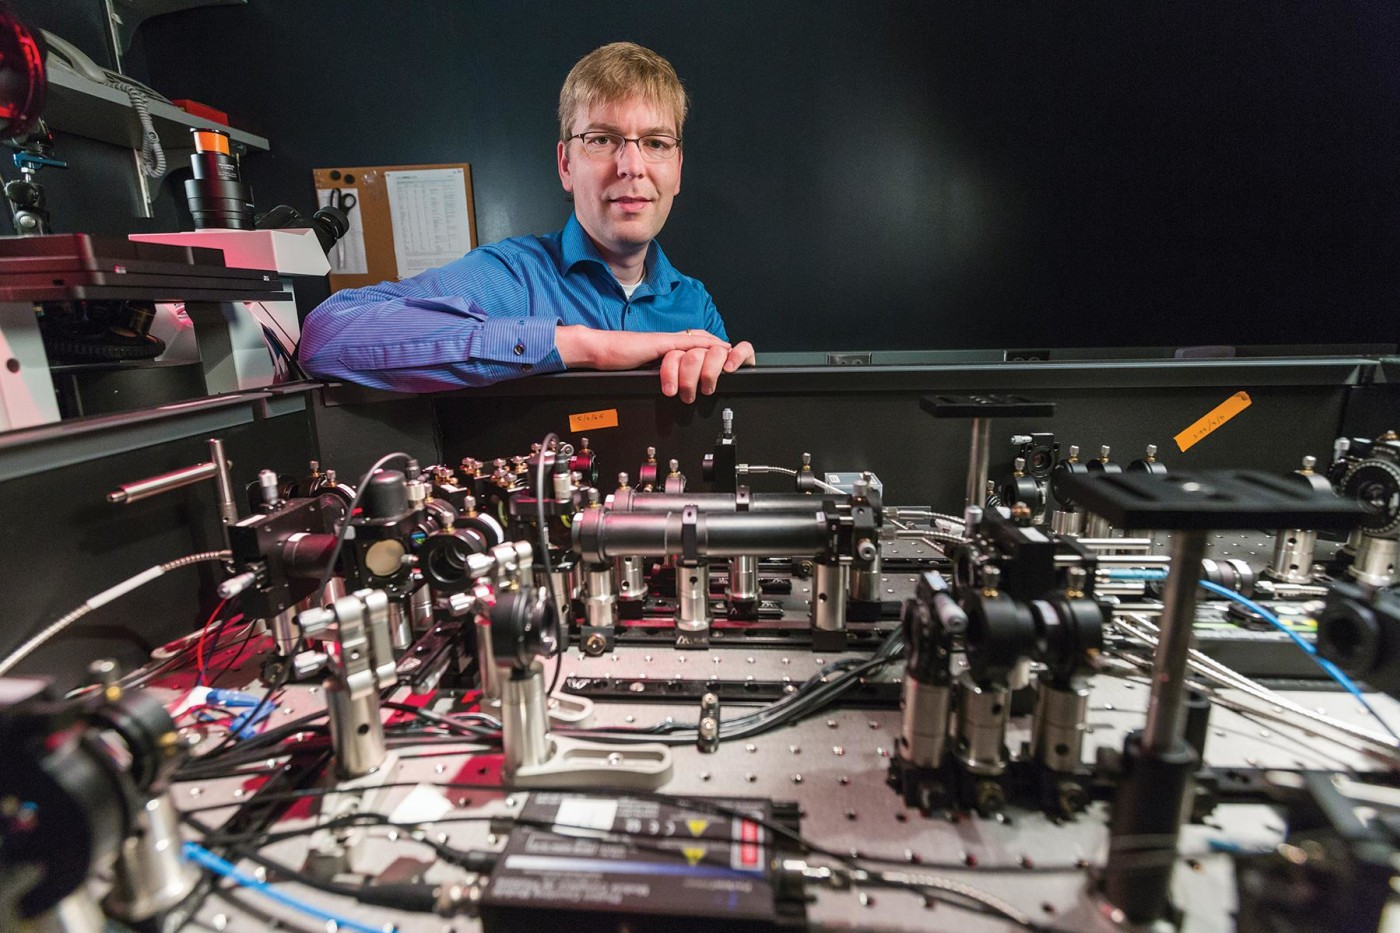 Joerg Bewersdorf trained in physics, but now works with cell biologists looking for images of ever-smaller cellular structures